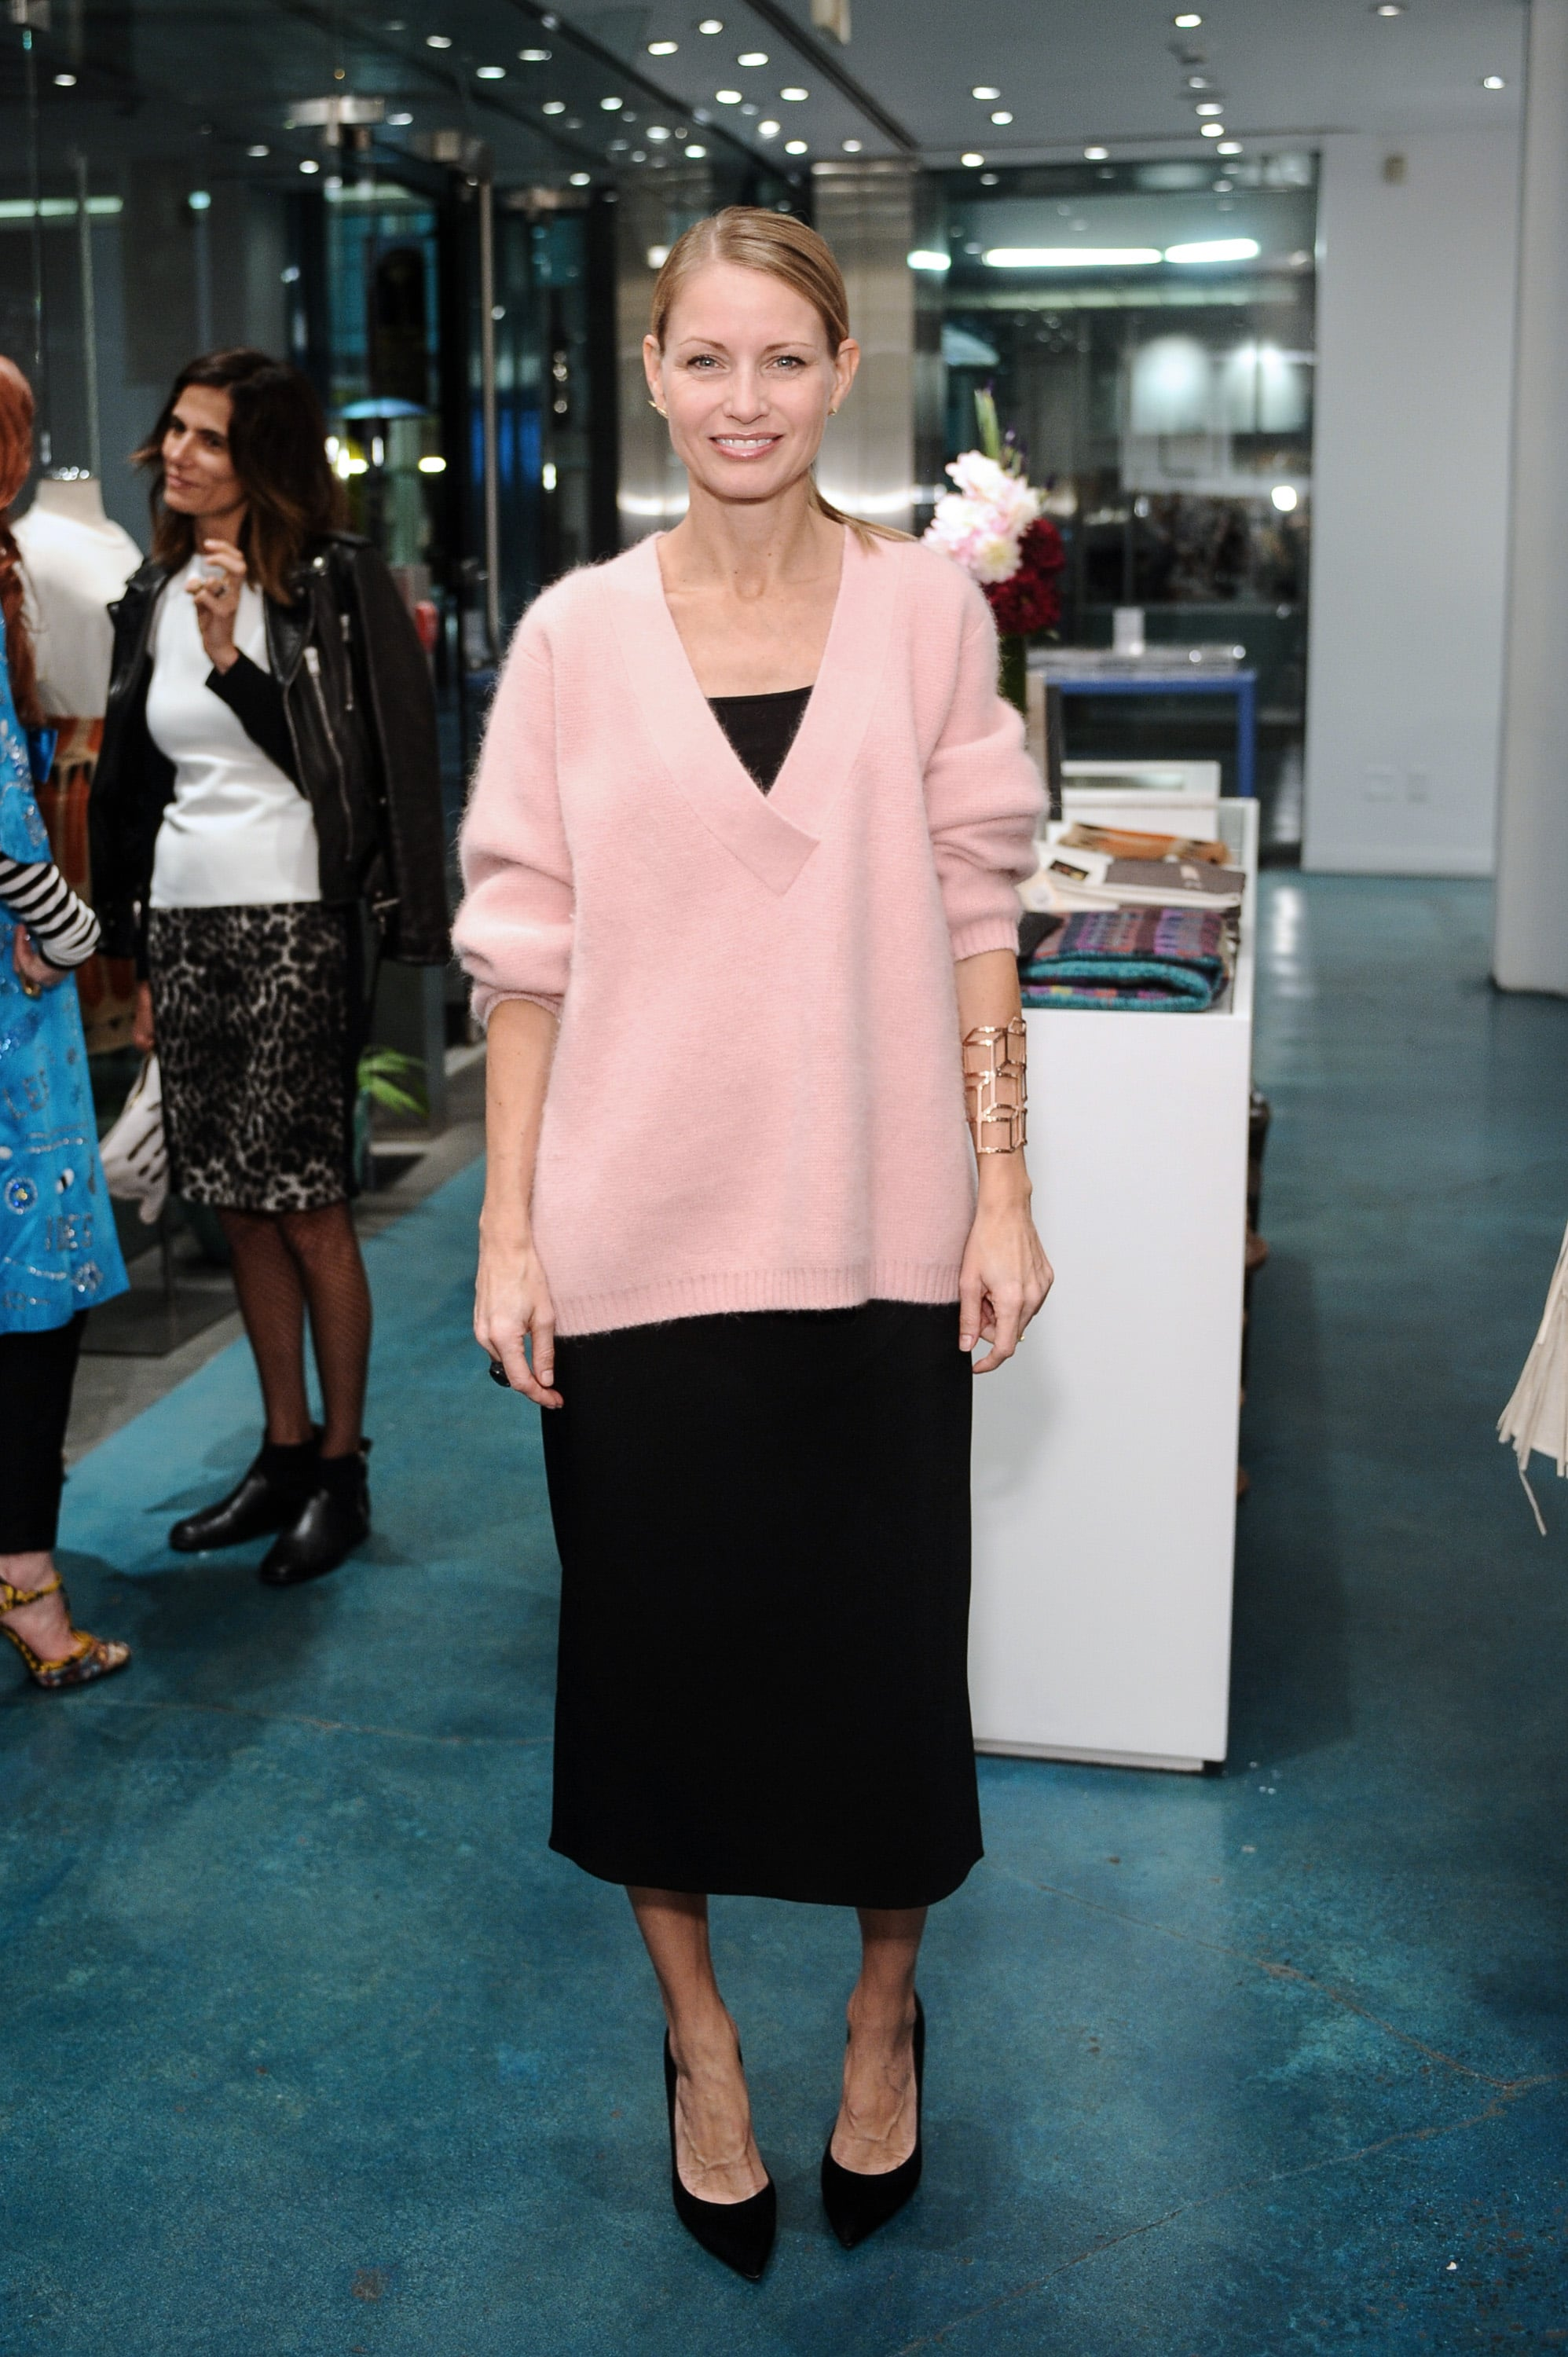 Holli Rogers at LACMA's Director's Circle and Net-A-Porter.com event.